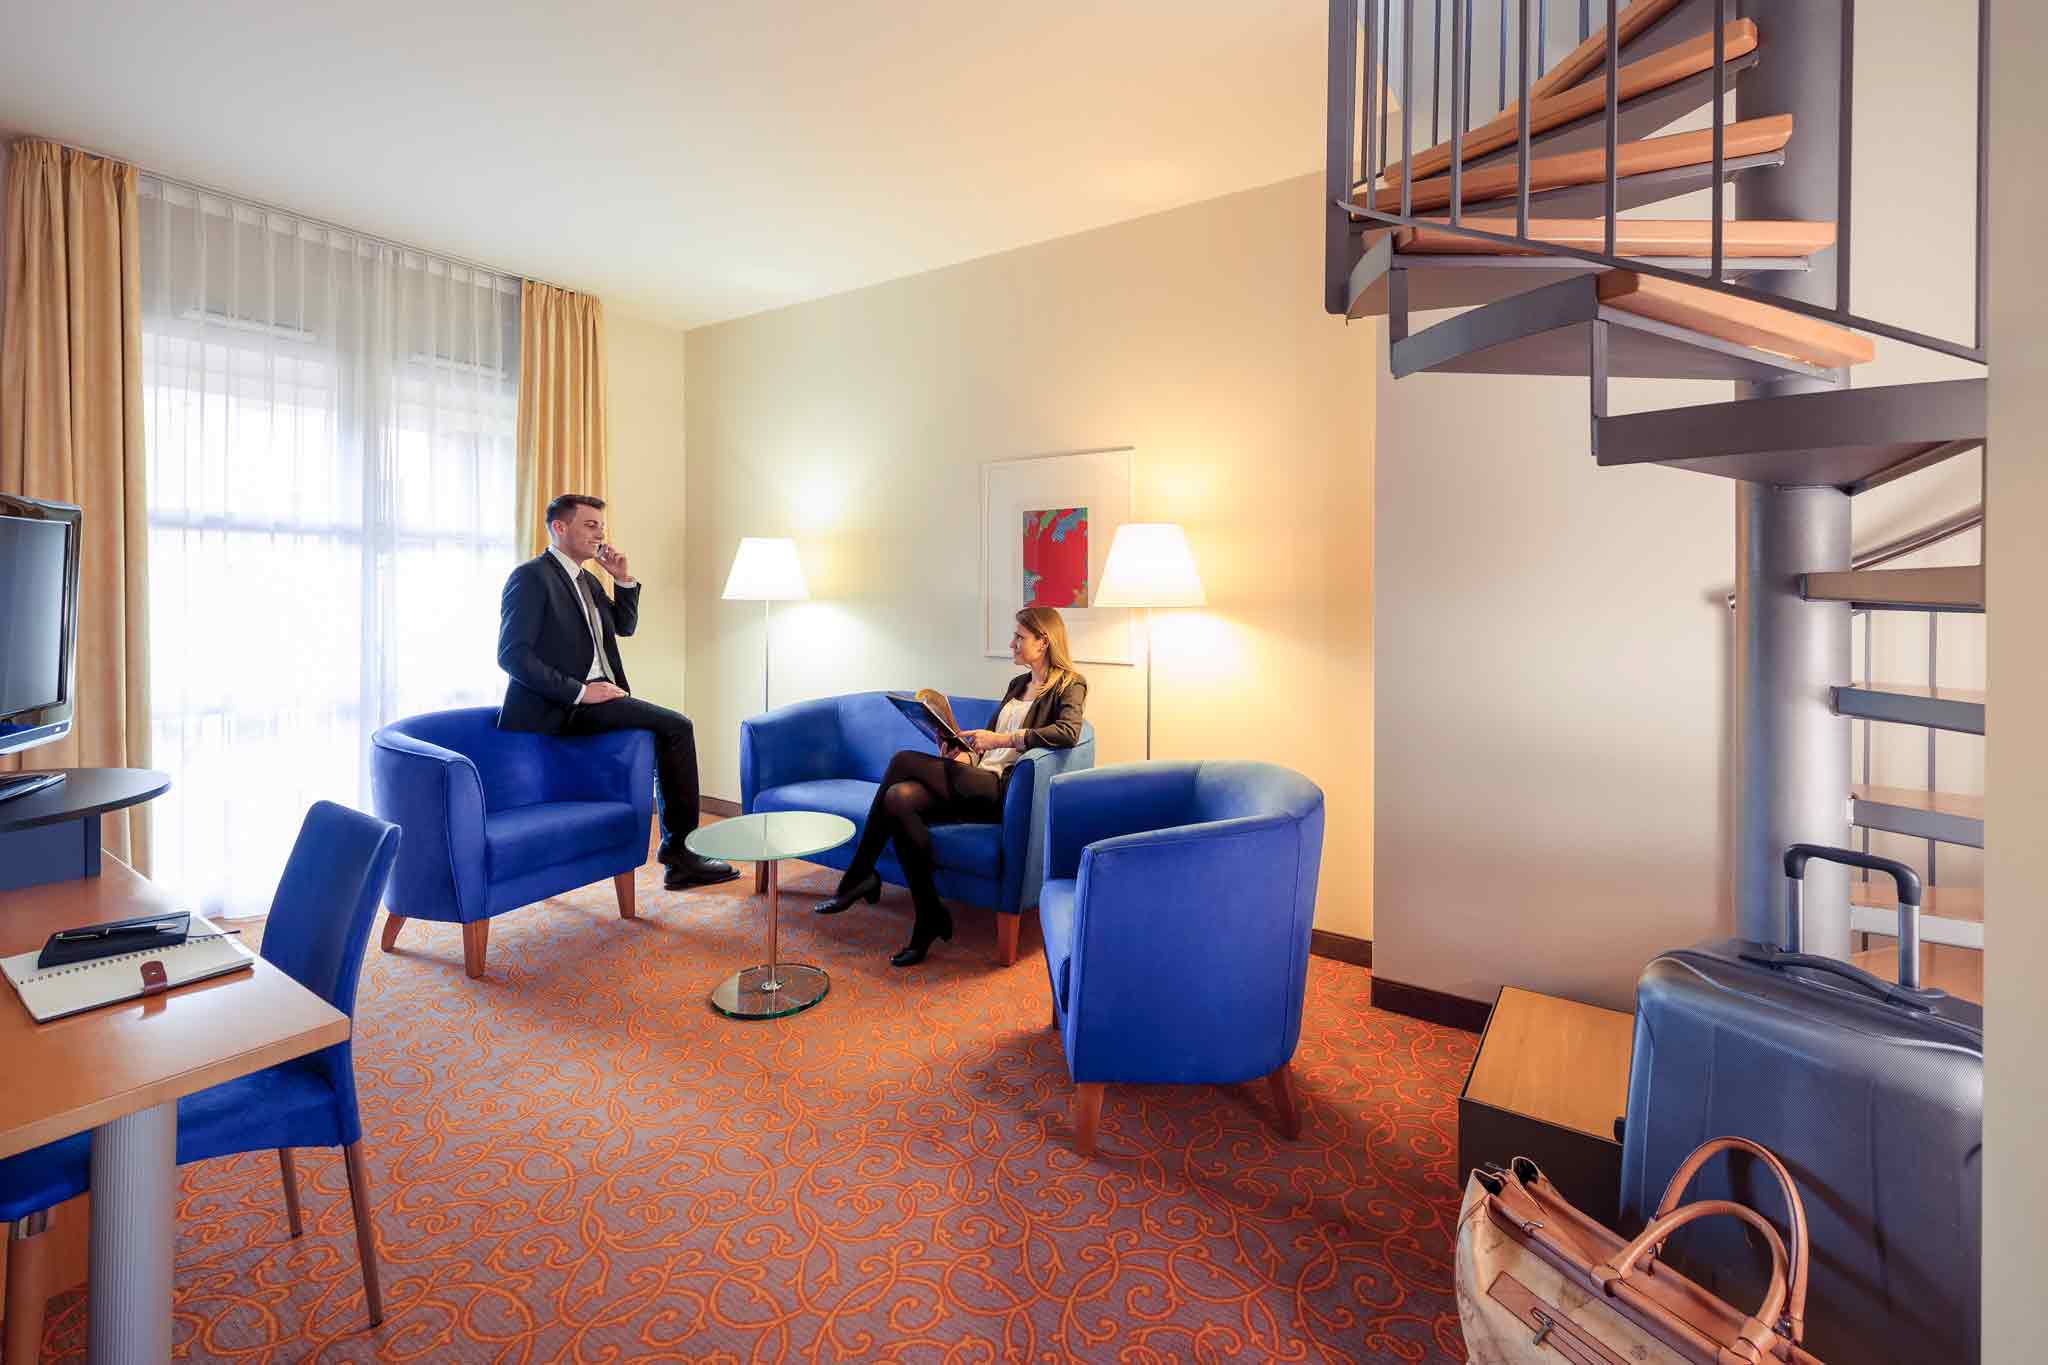 Mercure Hotel & Residenz Berlin Checkpoint Charlie 客房视图